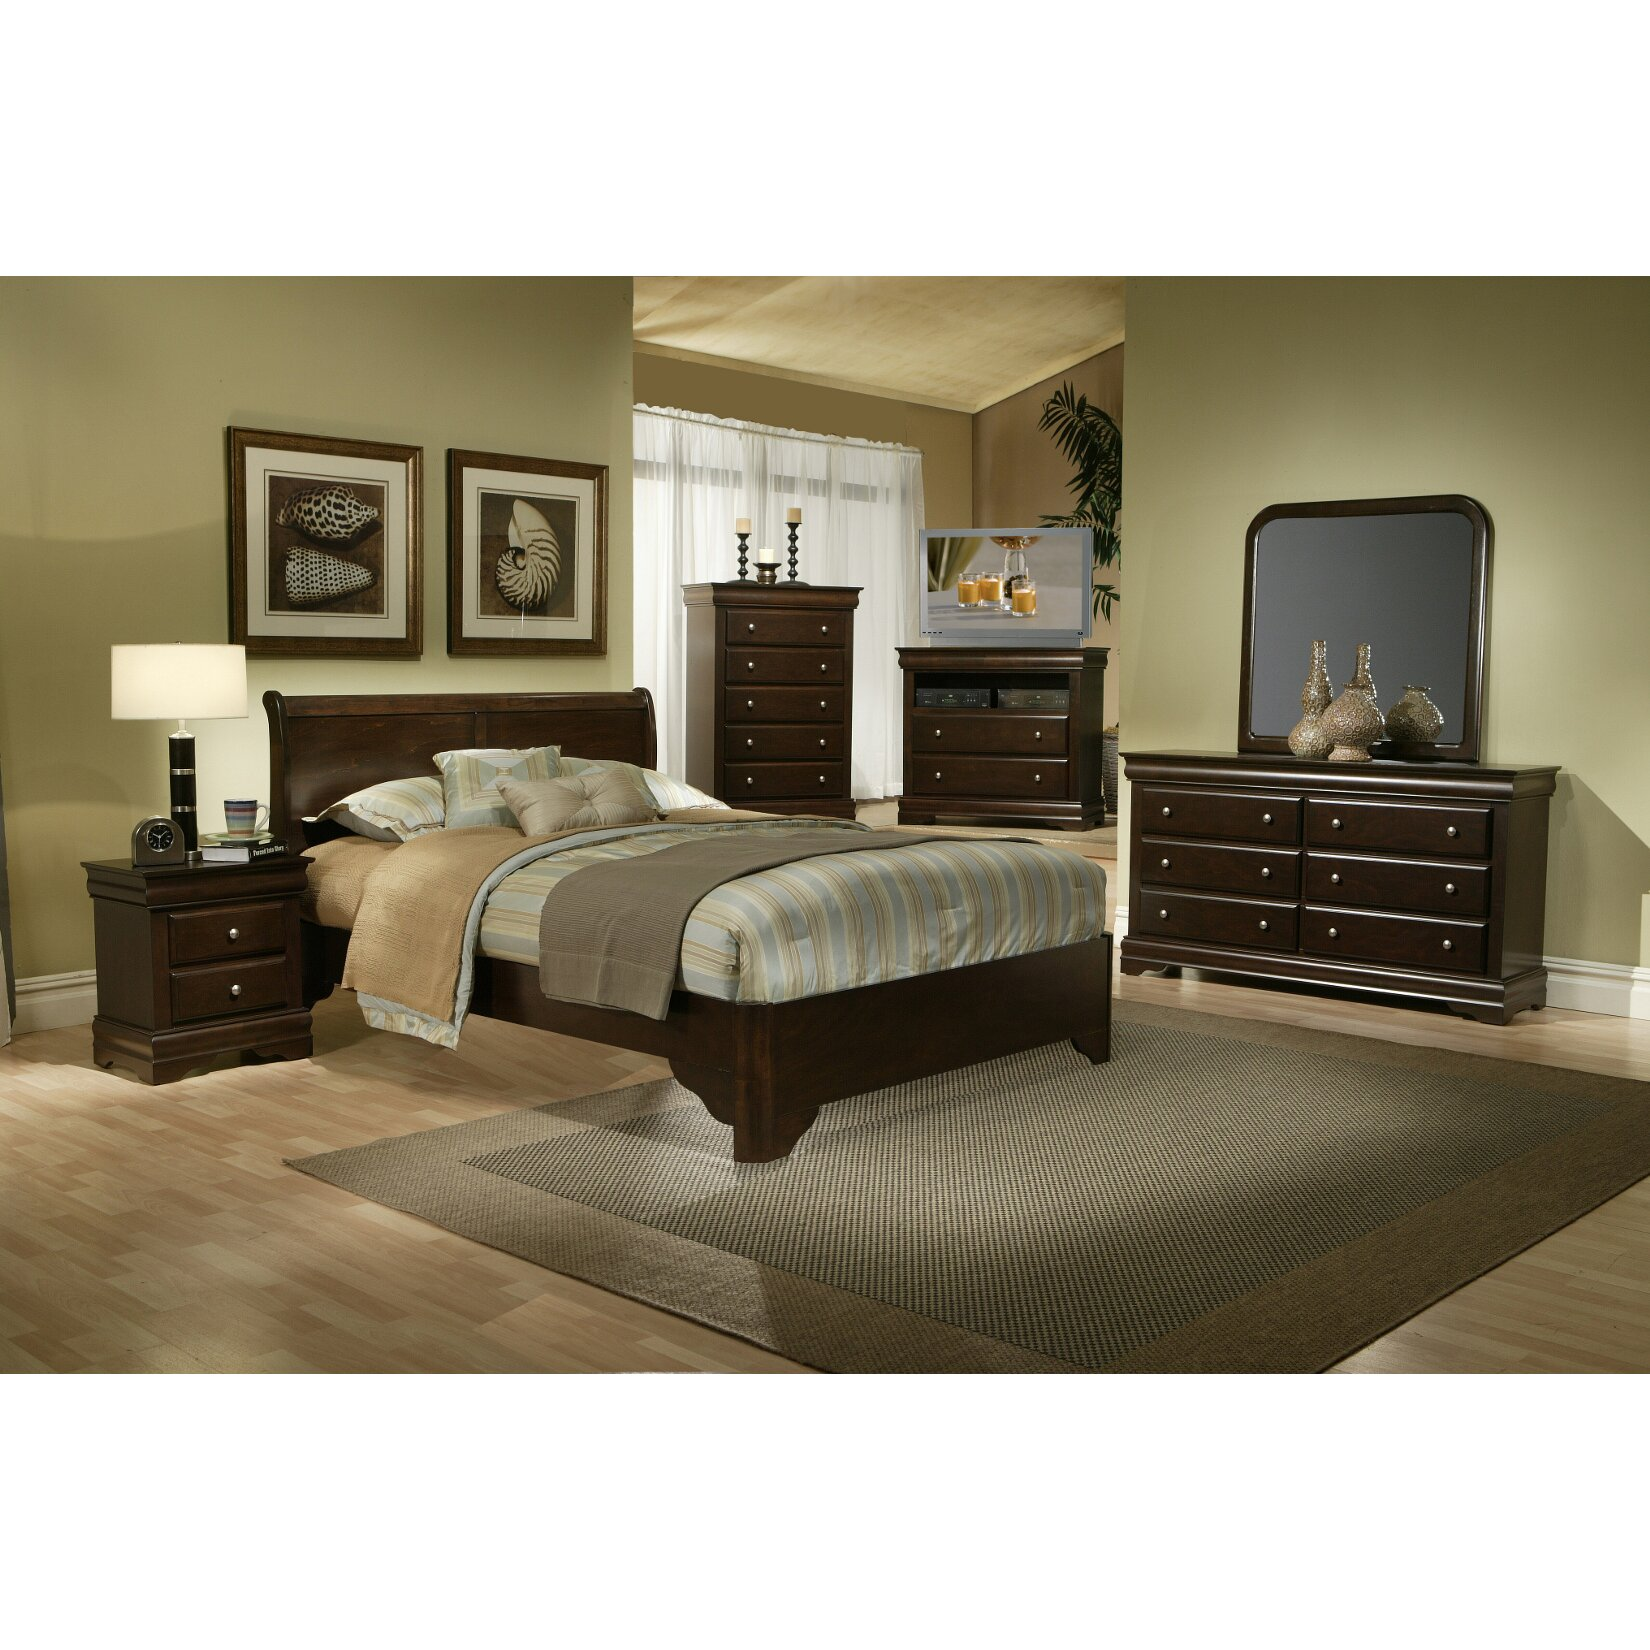 Darby Home Co Emden Panel Bed Reviews Wayfair